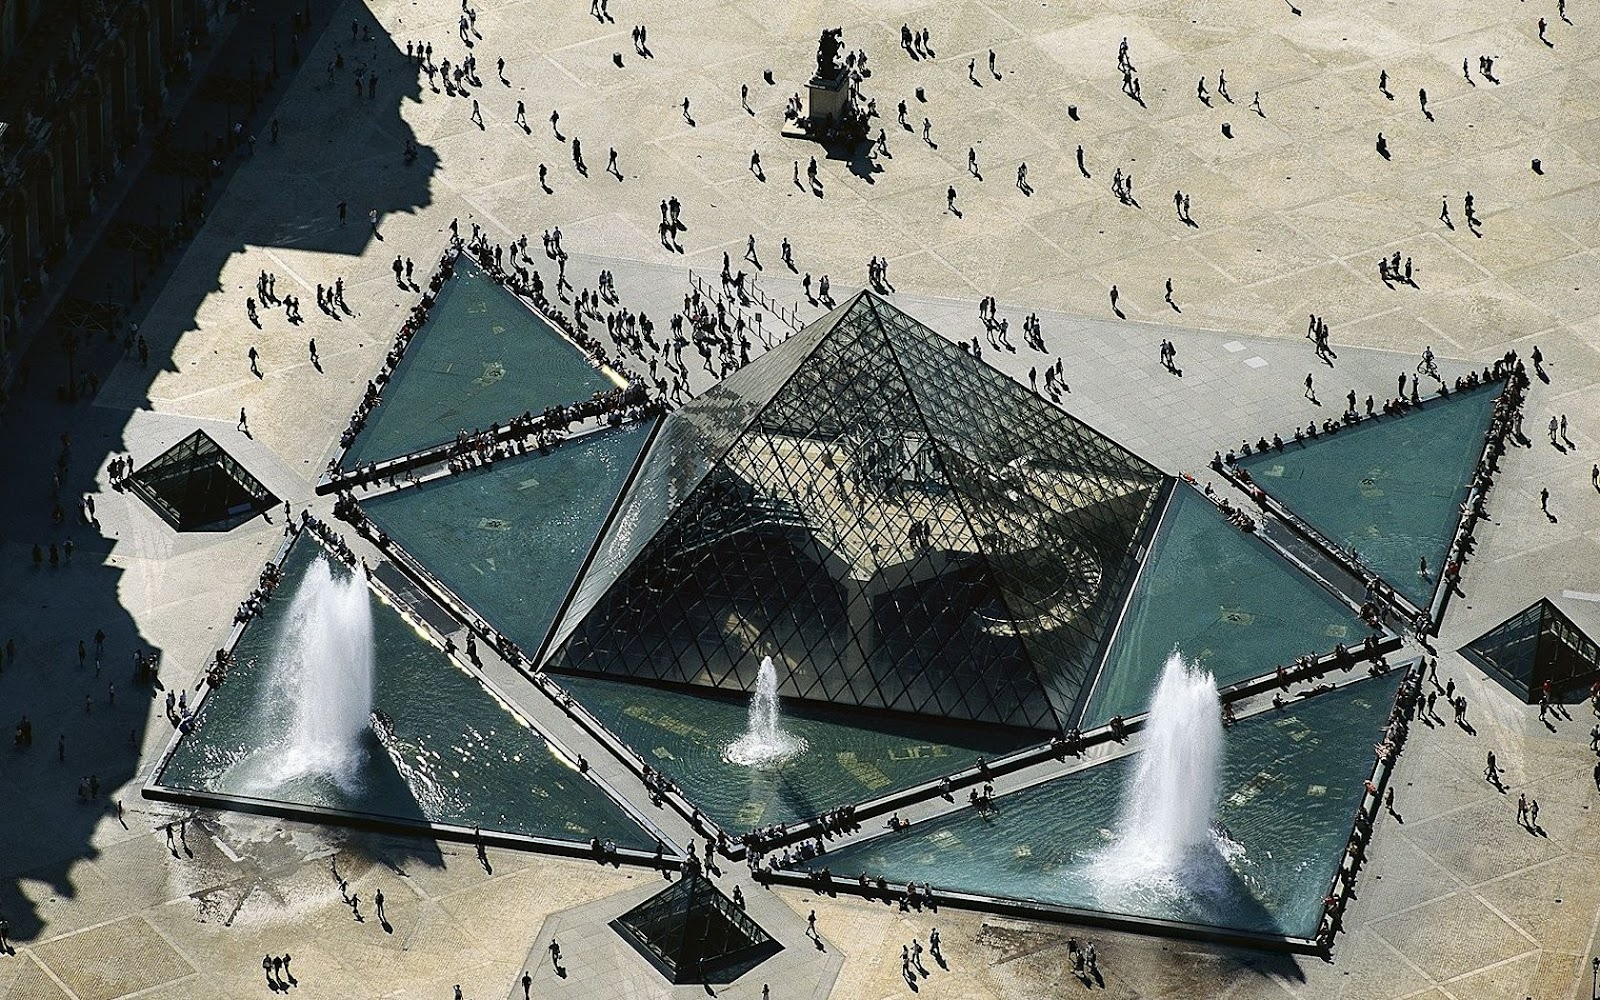 Paris louvre glass pyramid hd wallpapers hd wallpapers backgrounds photos - Les classiques du design ...